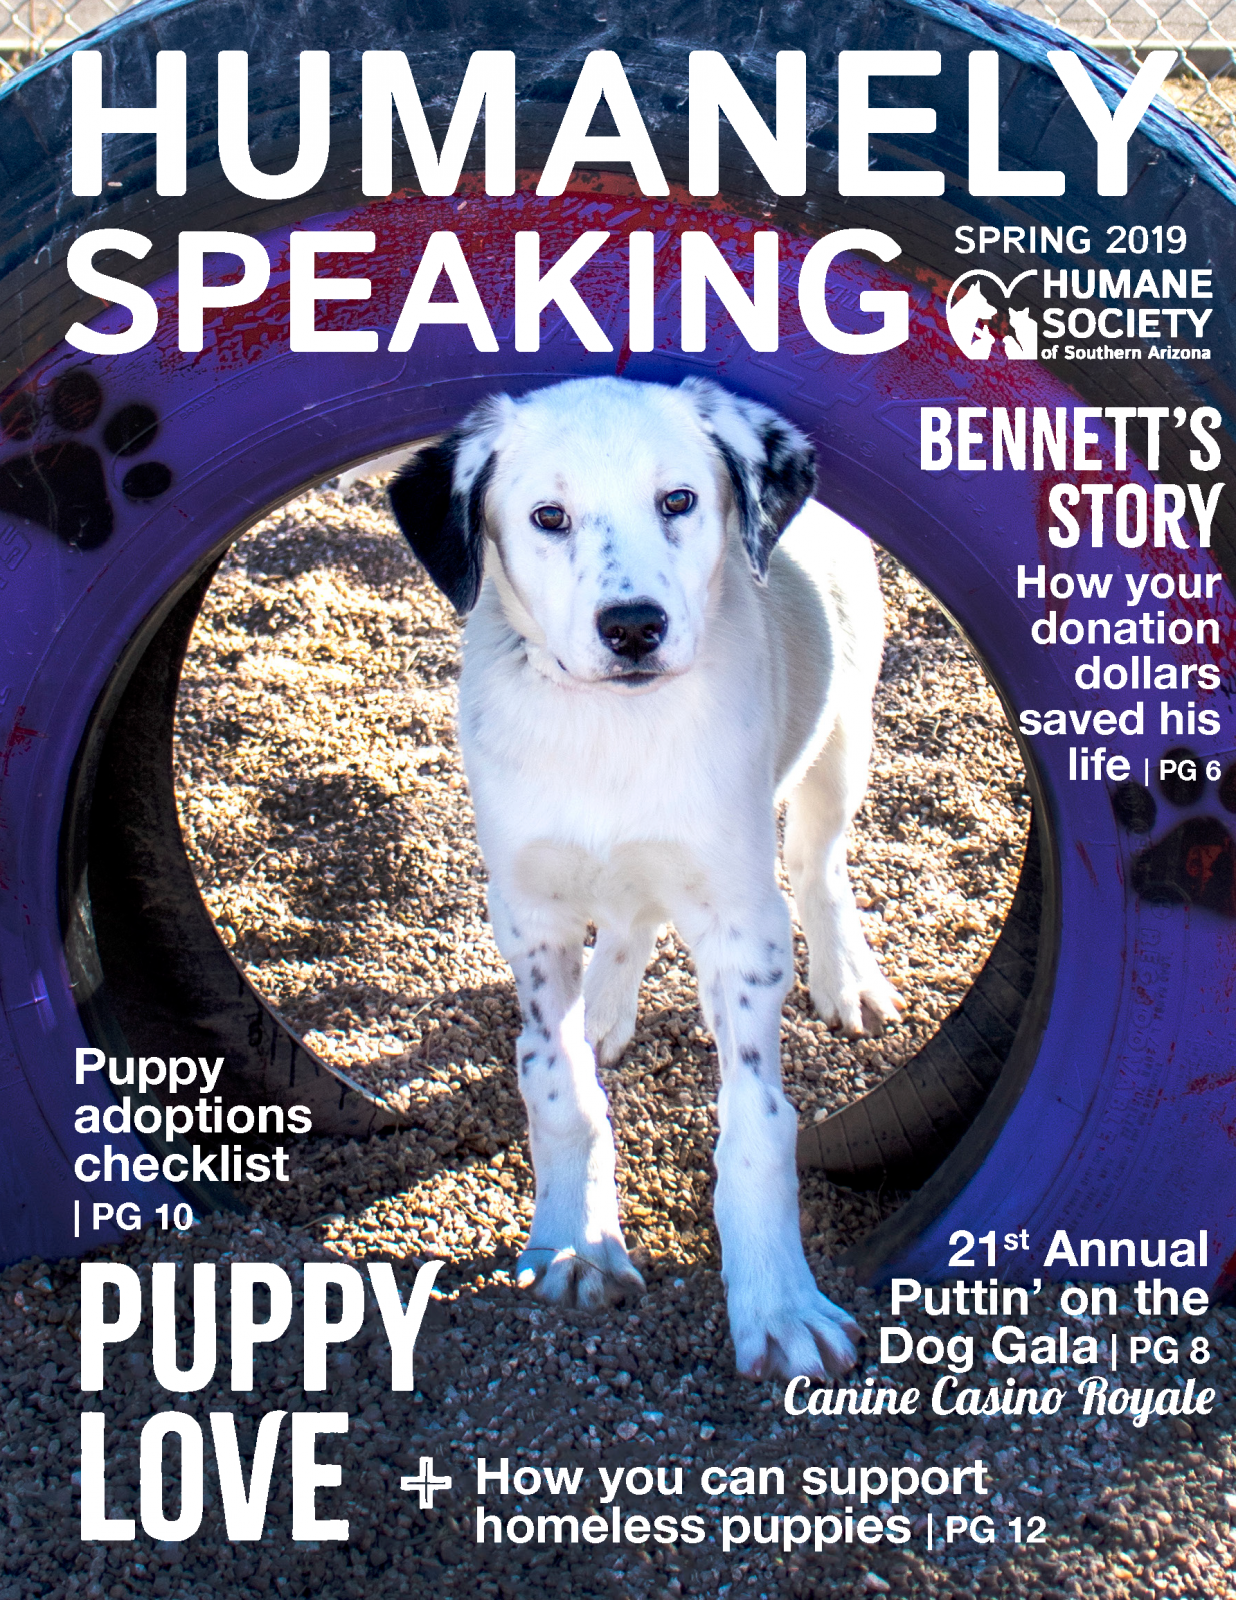 Humanely Speaking Spring 2019 cover